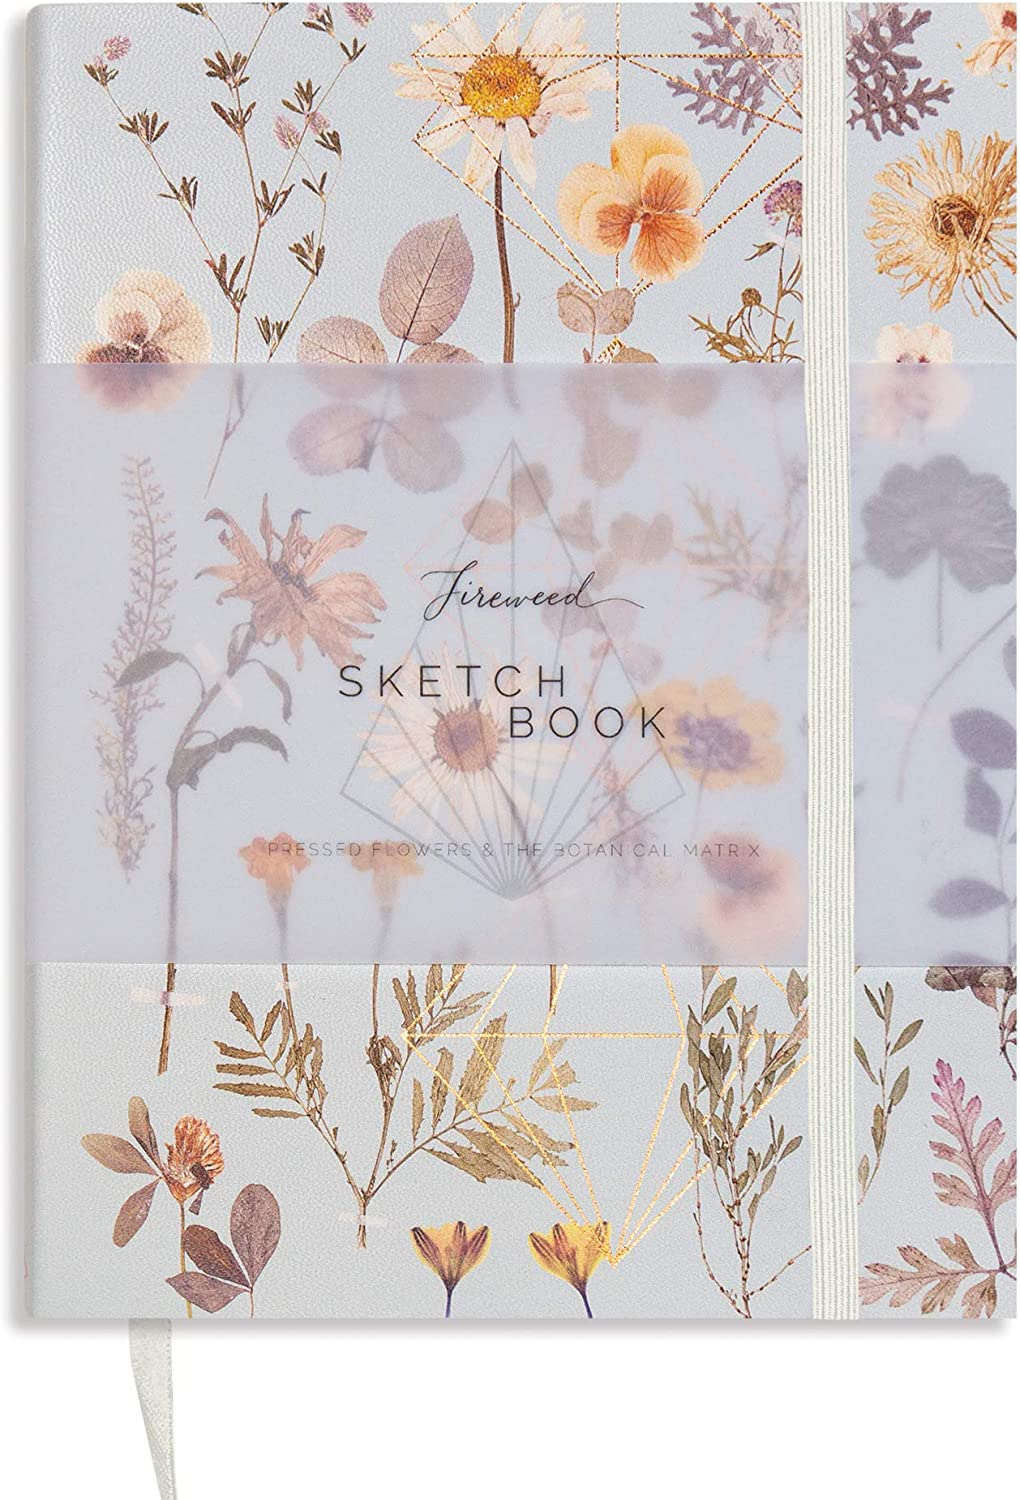 Fireweed: Sketchbook - Sketch Pads for Drawing - Blank Notebook for Home Office, Travel, Or School - Quality Sketchbook, Drawing Pad and Writing Journal (Golden Garden)